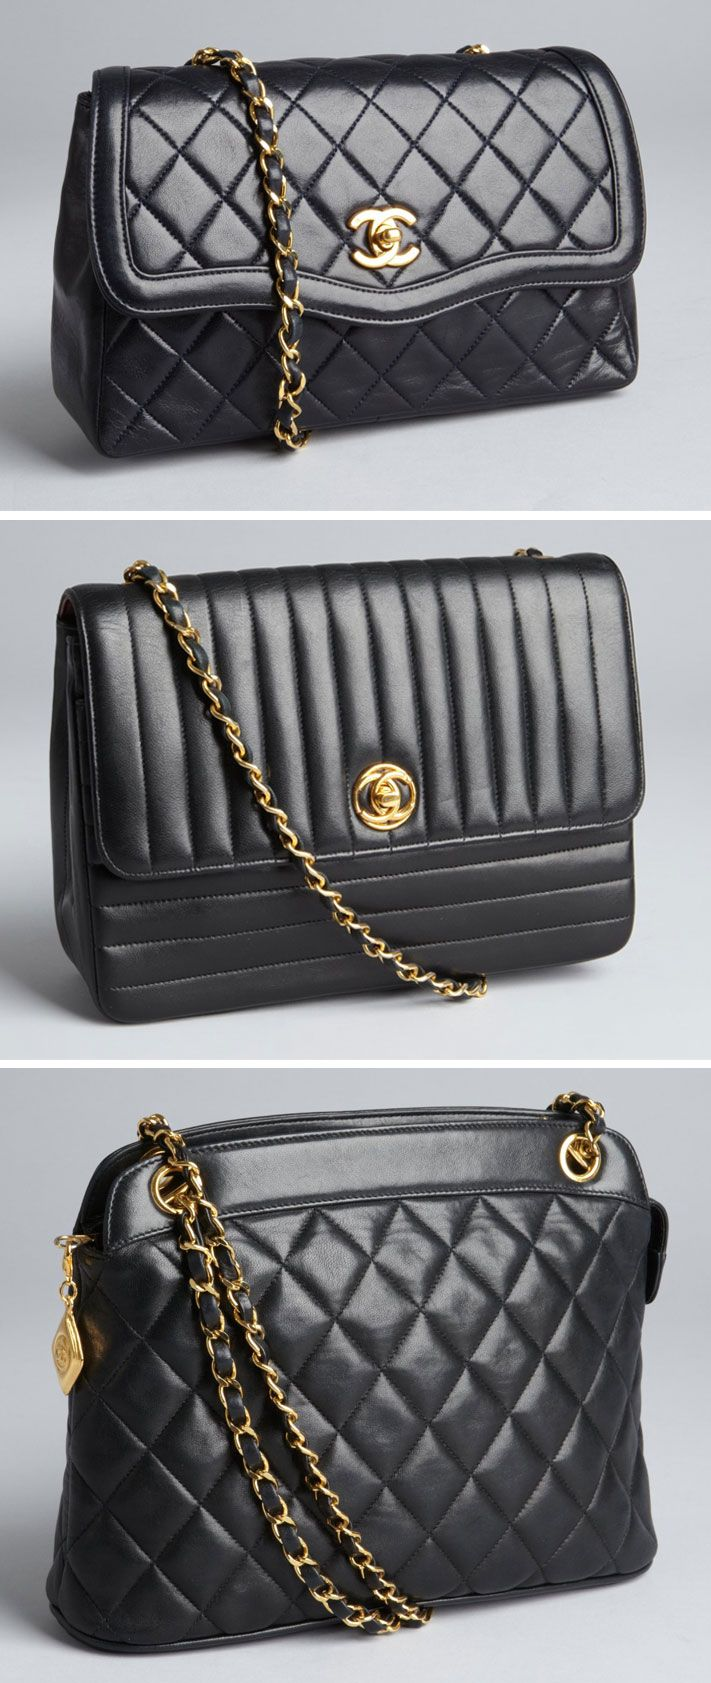 Look - Classy Chanel clutches for ladies video